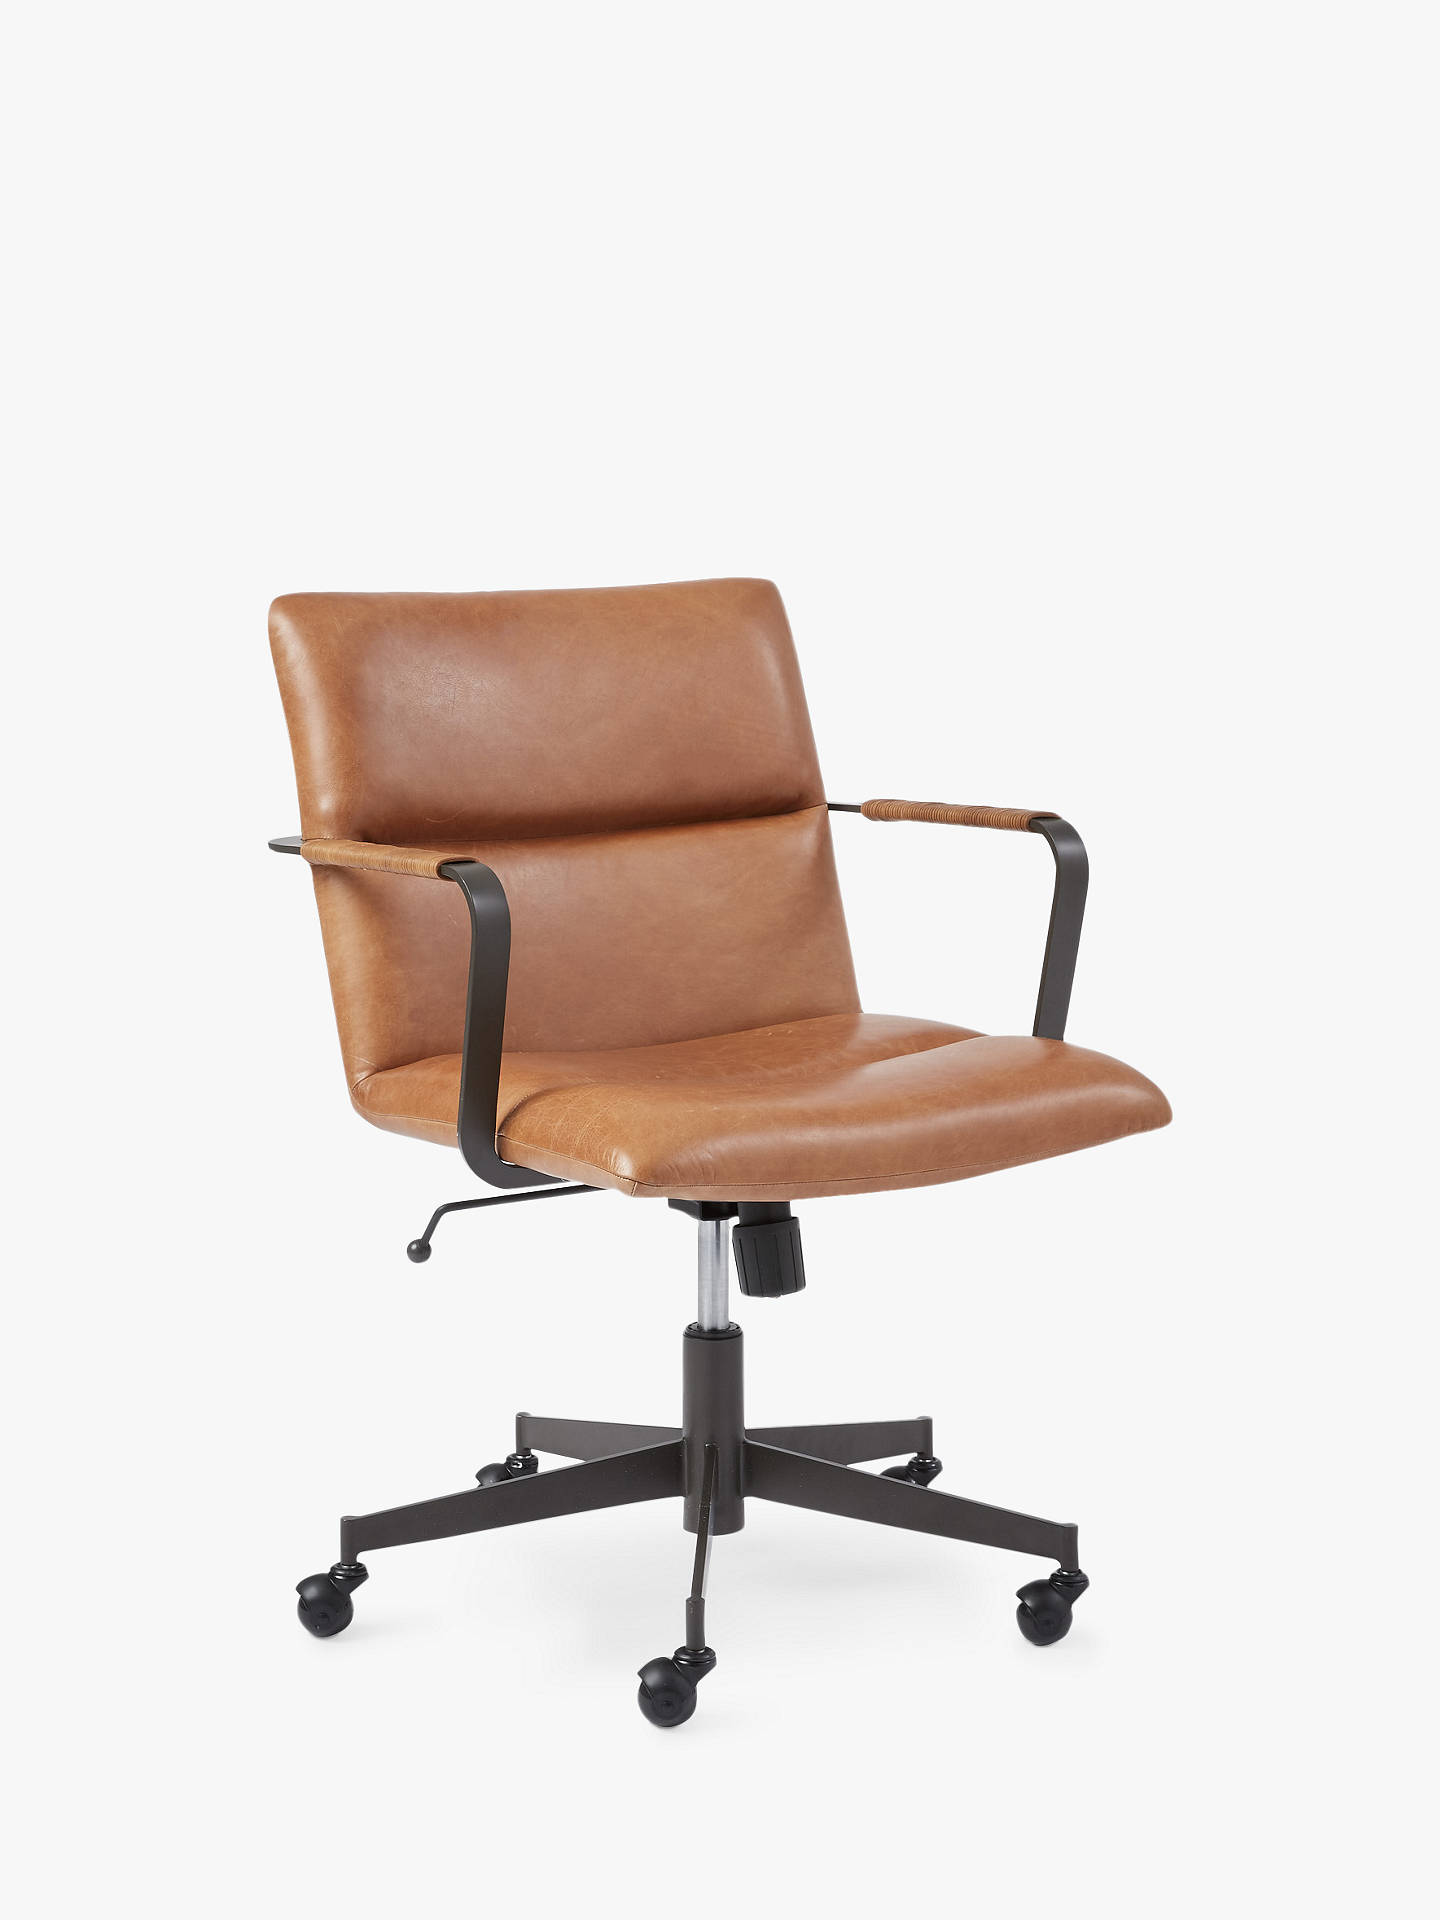 West Elm Cooper Mid Century Leather Office Chair Tan At